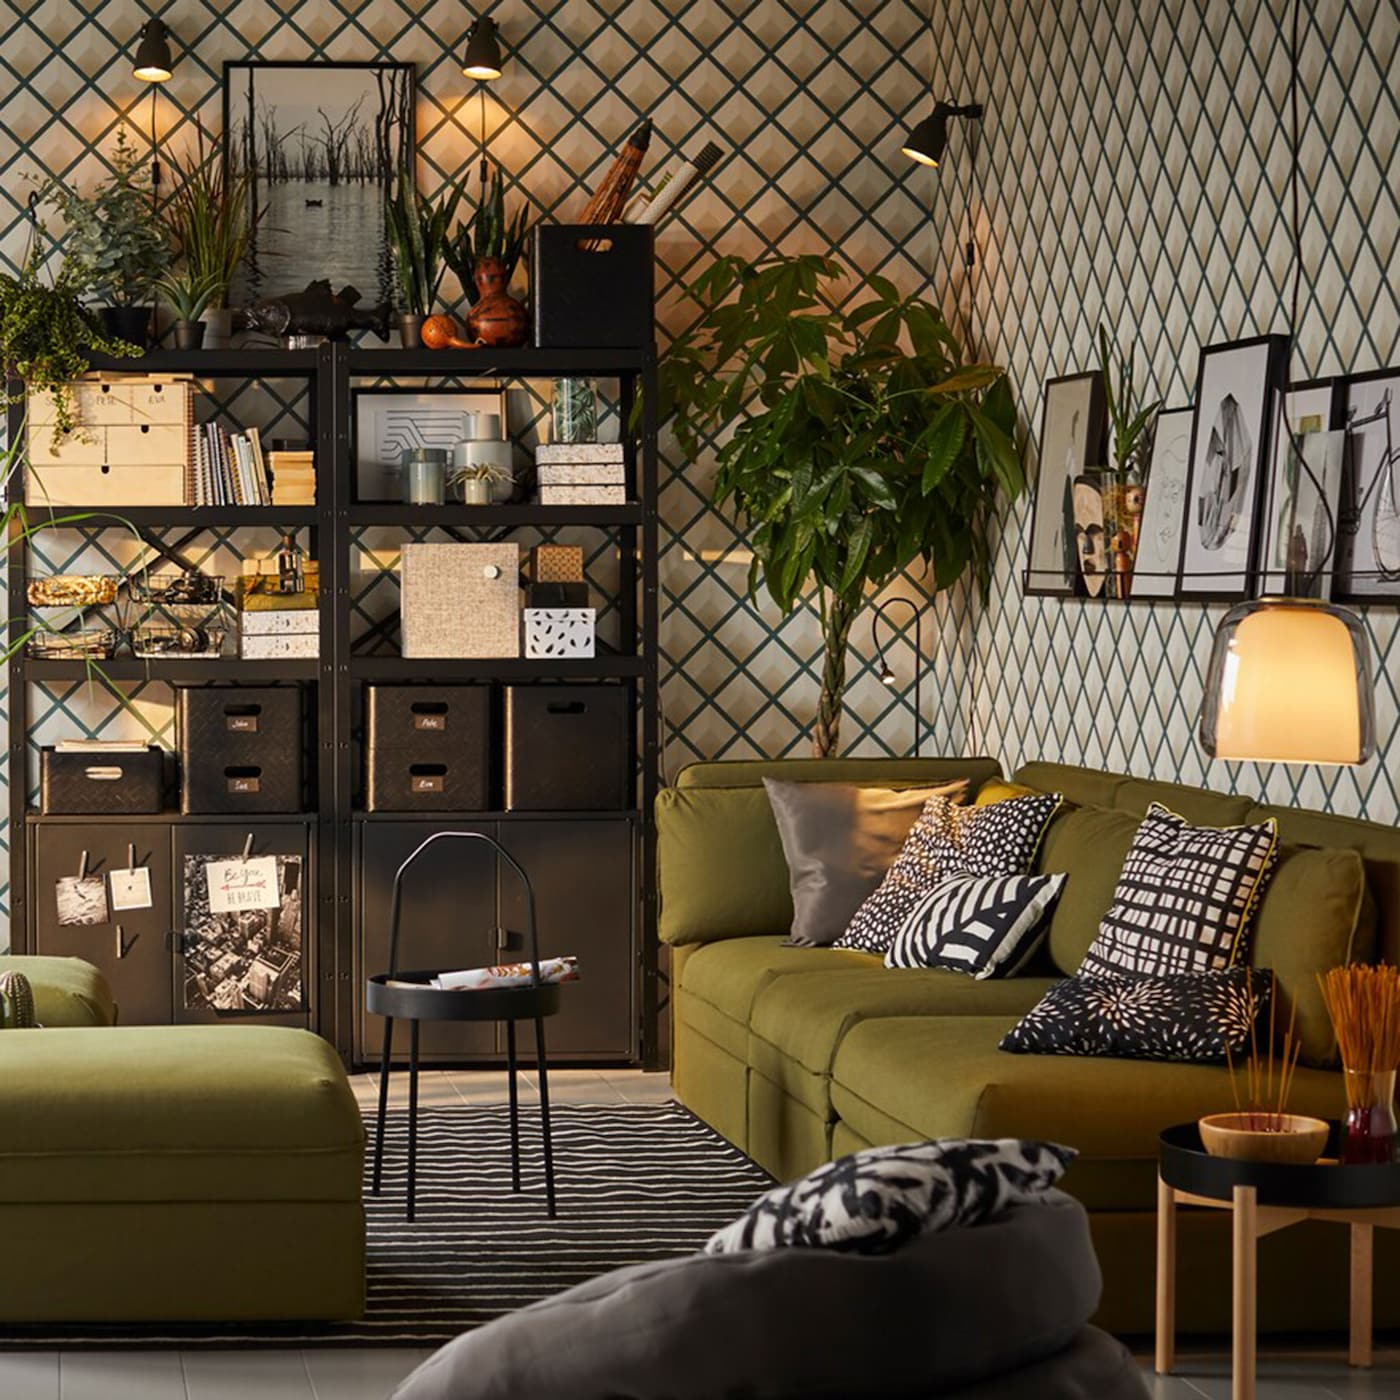 Shared Spaces And Smart Storage Places Ikea